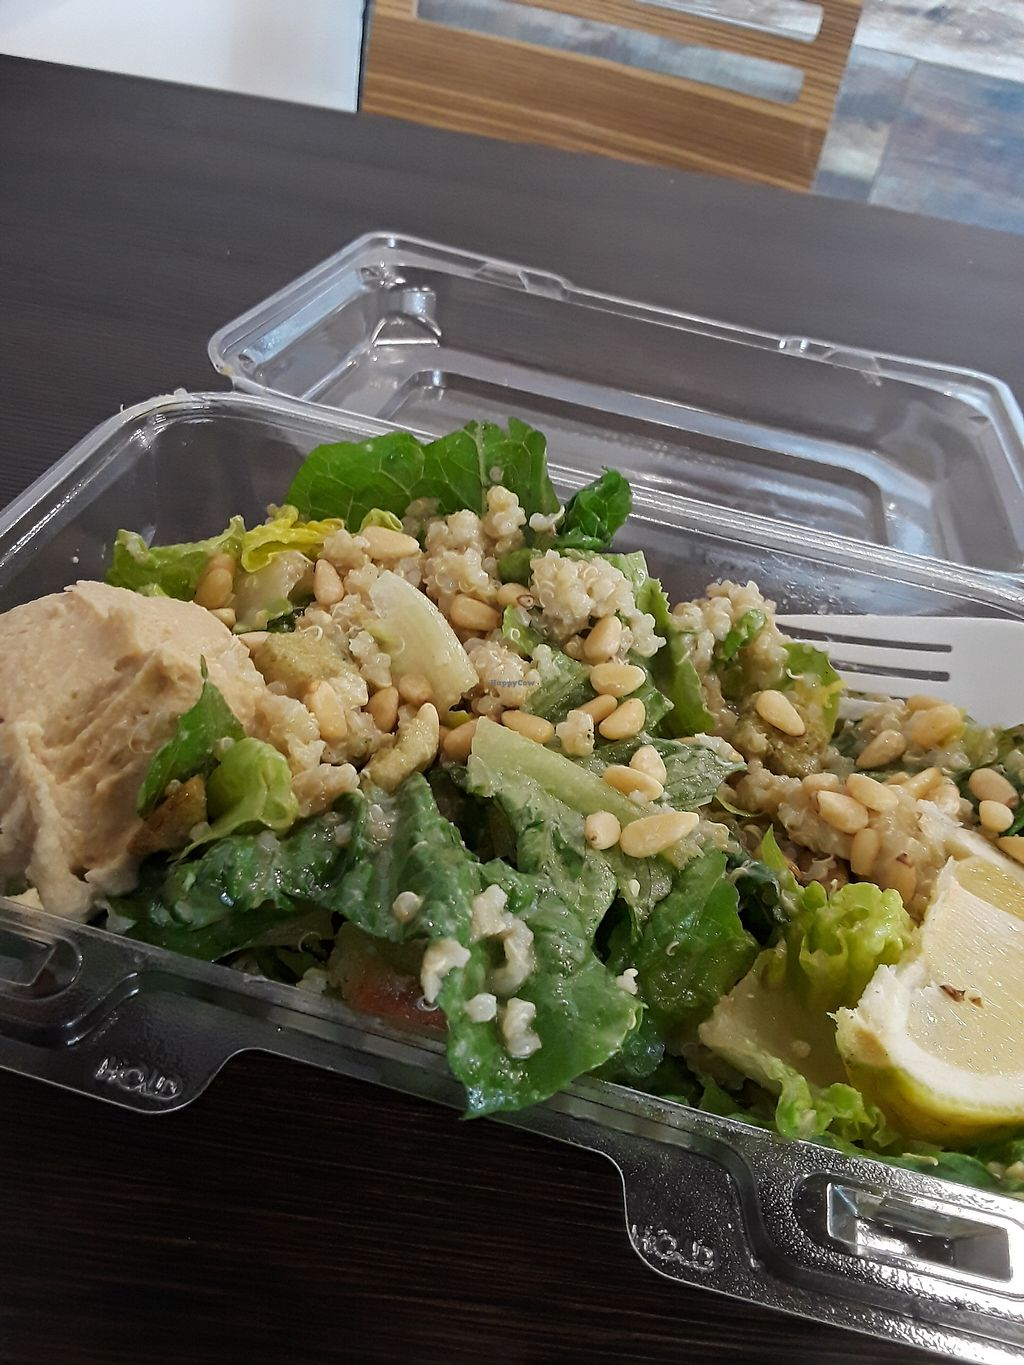 """Photo of The Salad Box  by <a href=""""/members/profile/anastronomy"""">anastronomy</a> <br/>Not your typical ceaser salad <br/> October 30, 2017  - <a href='/contact/abuse/image/80631/320238'>Report</a>"""